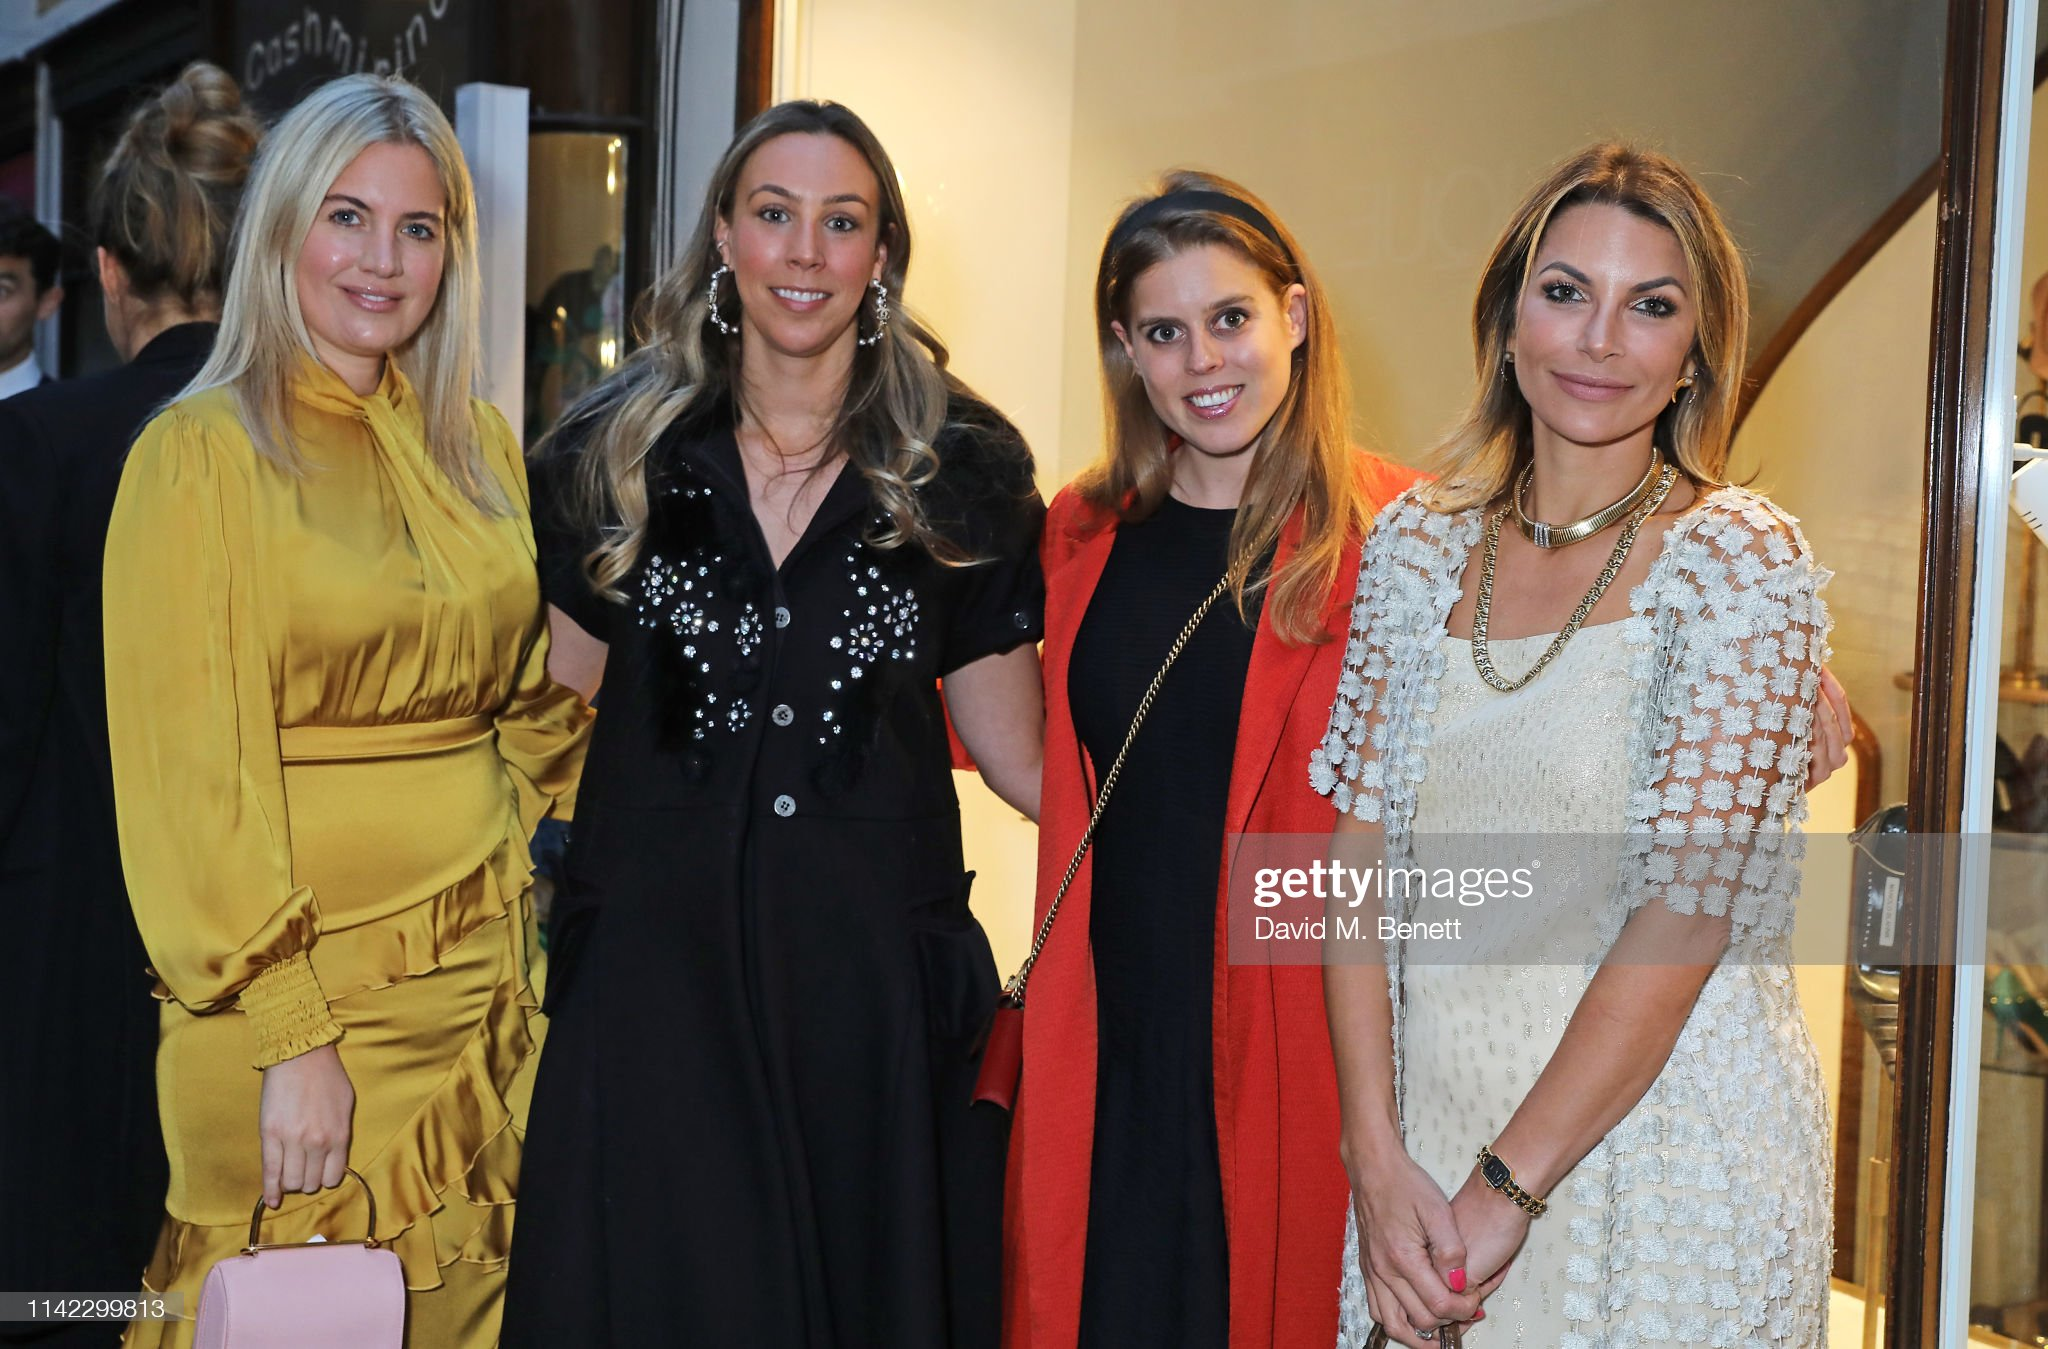 https://media.gettyimages.com/photos/marissa-montgomery-melissa-mills-princess-beatrice-of-york-and-picture-id1142299813?s=2048x2048